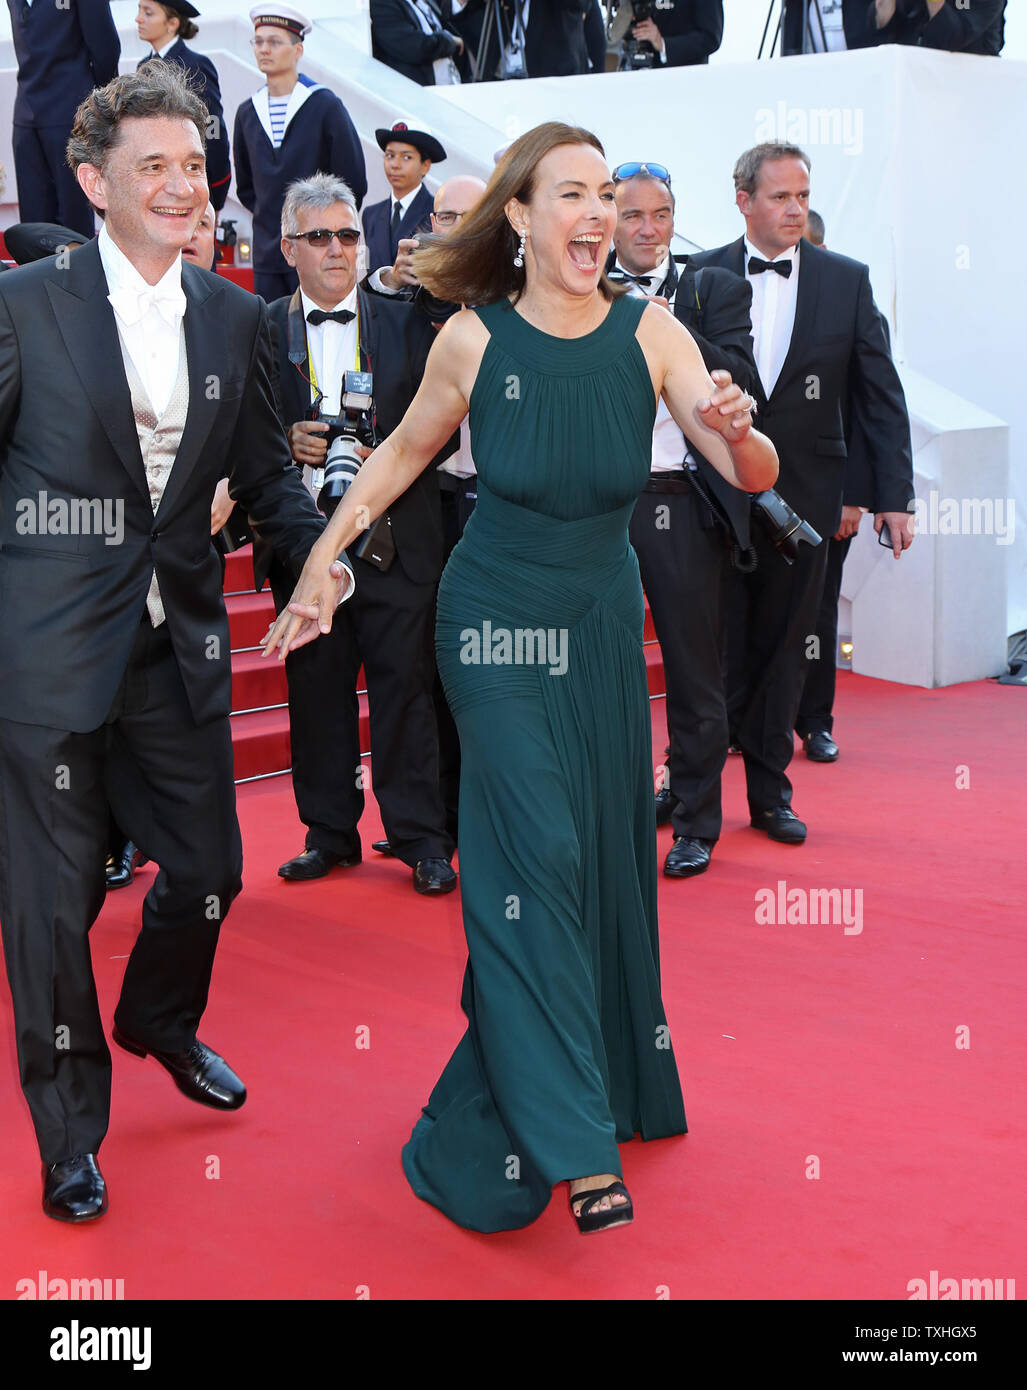 Philippe Sereys de Rothschild (L) and Carole Bouquet arrive on the red carpet before the screening of the film 'The Little Prince' during the 68th annual Cannes International Film Festival in Cannes, France on May 22, 2015.  Photo by David Silpa/UPI - Stock Image